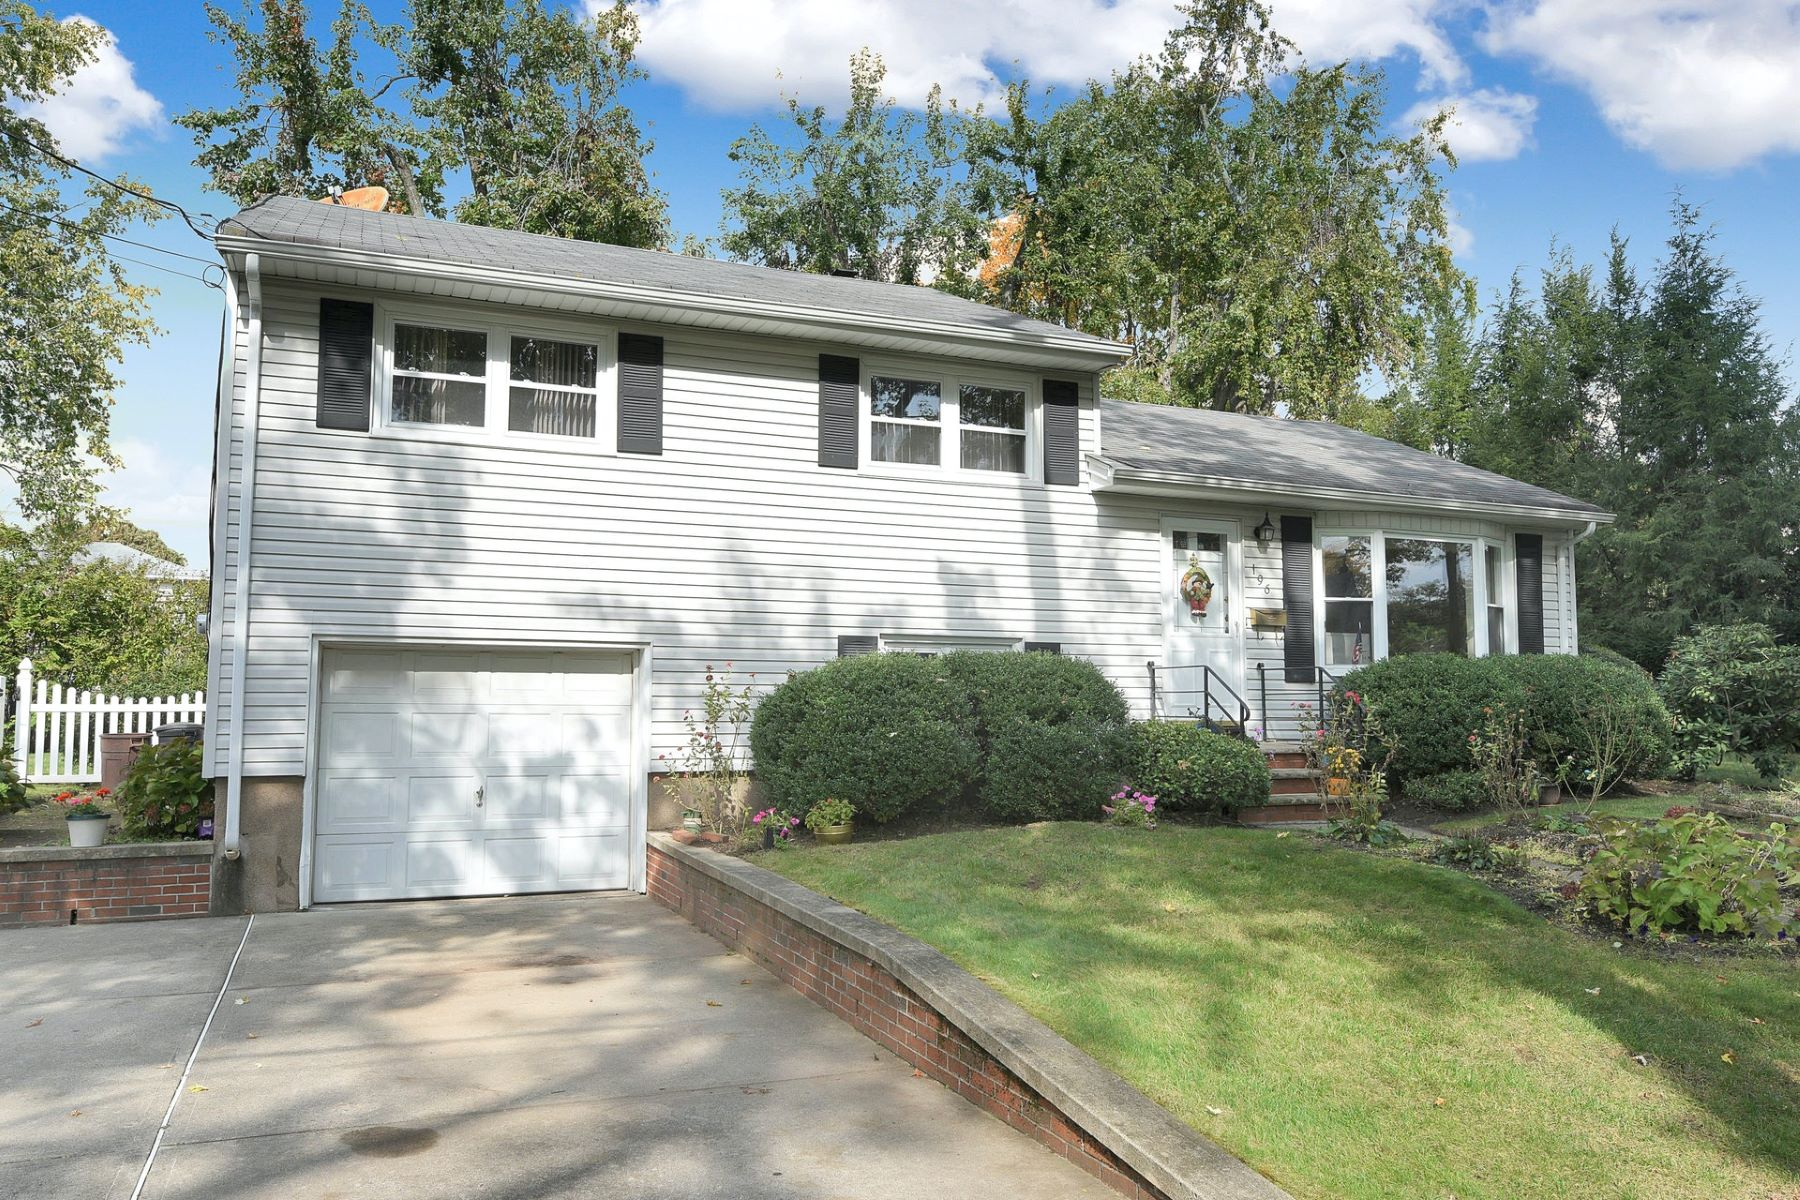 Single Family Homes for Sale at Beautiful Home 196 Randolph Ave, Dumont, New Jersey 07628 United States